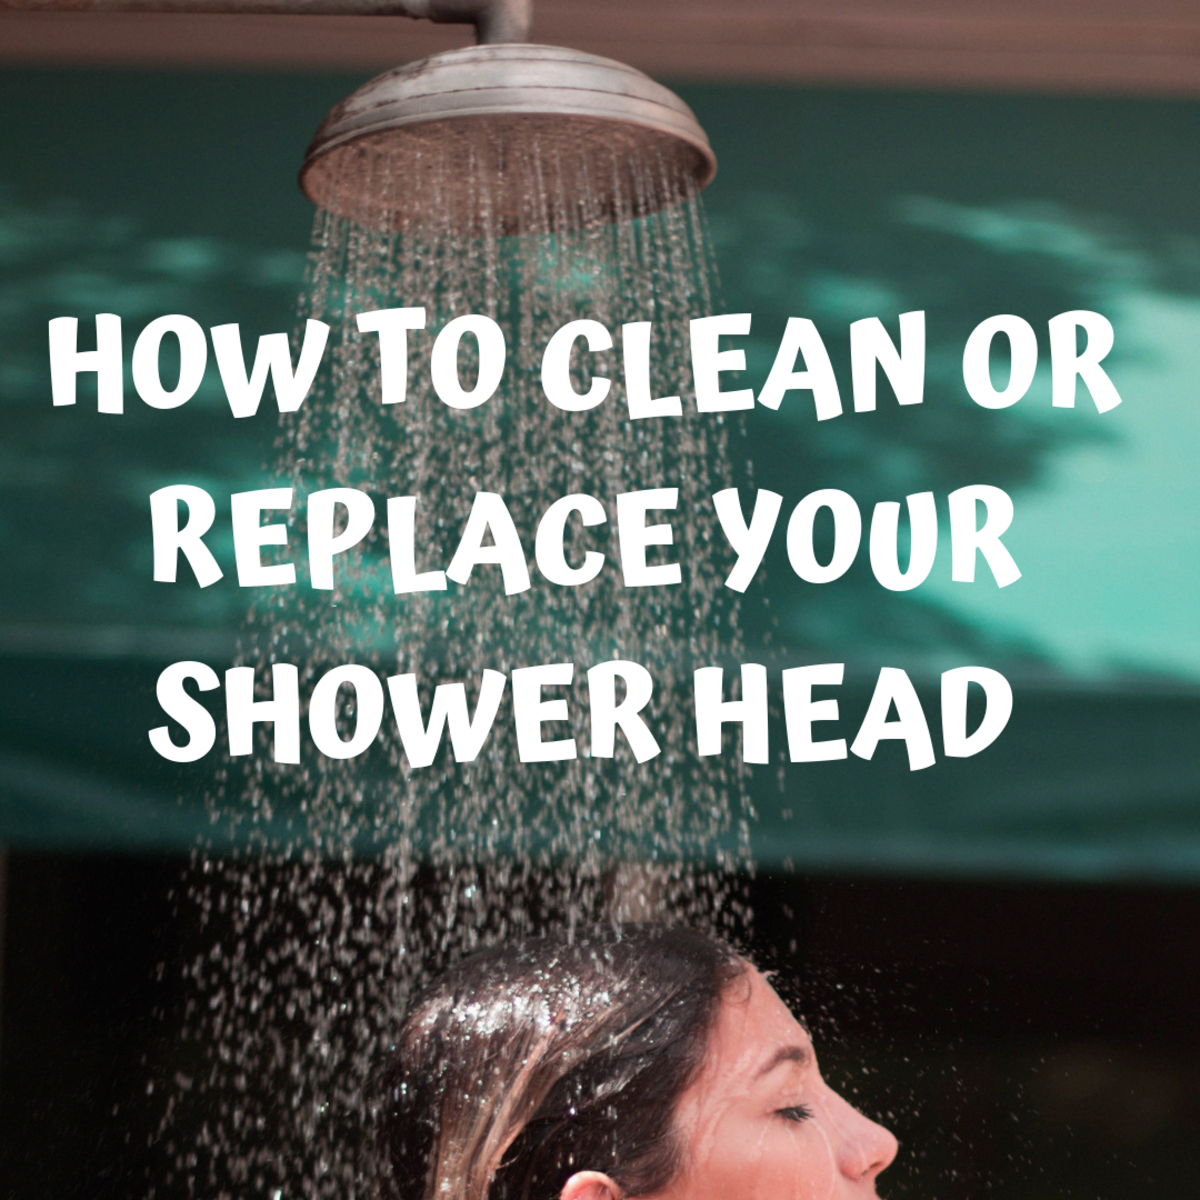 How to Clean or Replace Your Shower Head